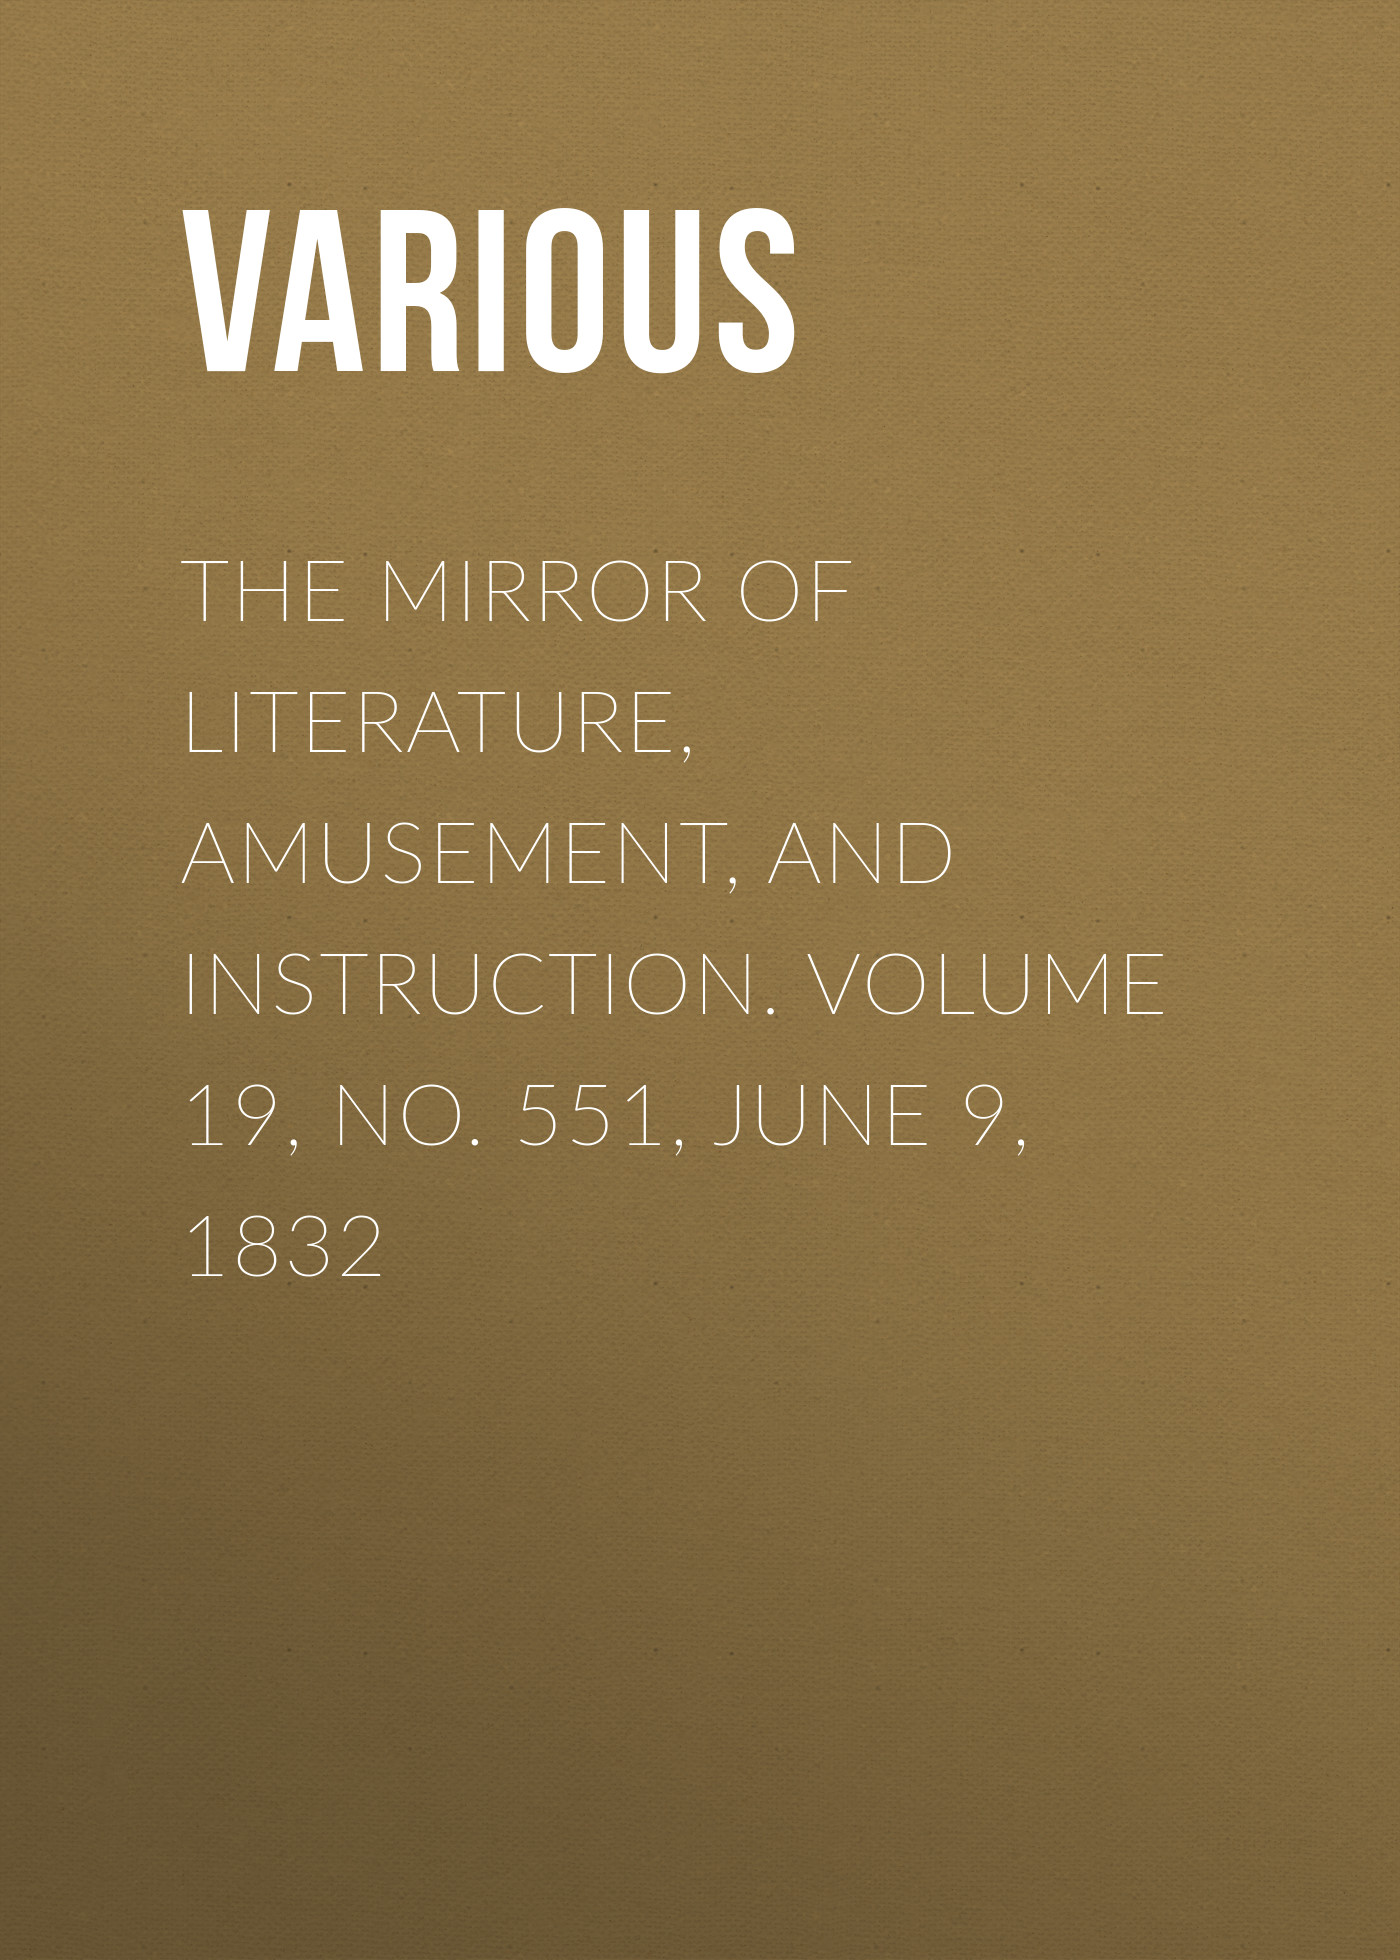 Various The Mirror of Literature, Amusement, and Instruction. Volume 19, No. 551, June 9, 1832 various the mirror of literature amusement and instruction volume 19 no 530 january 21 1832